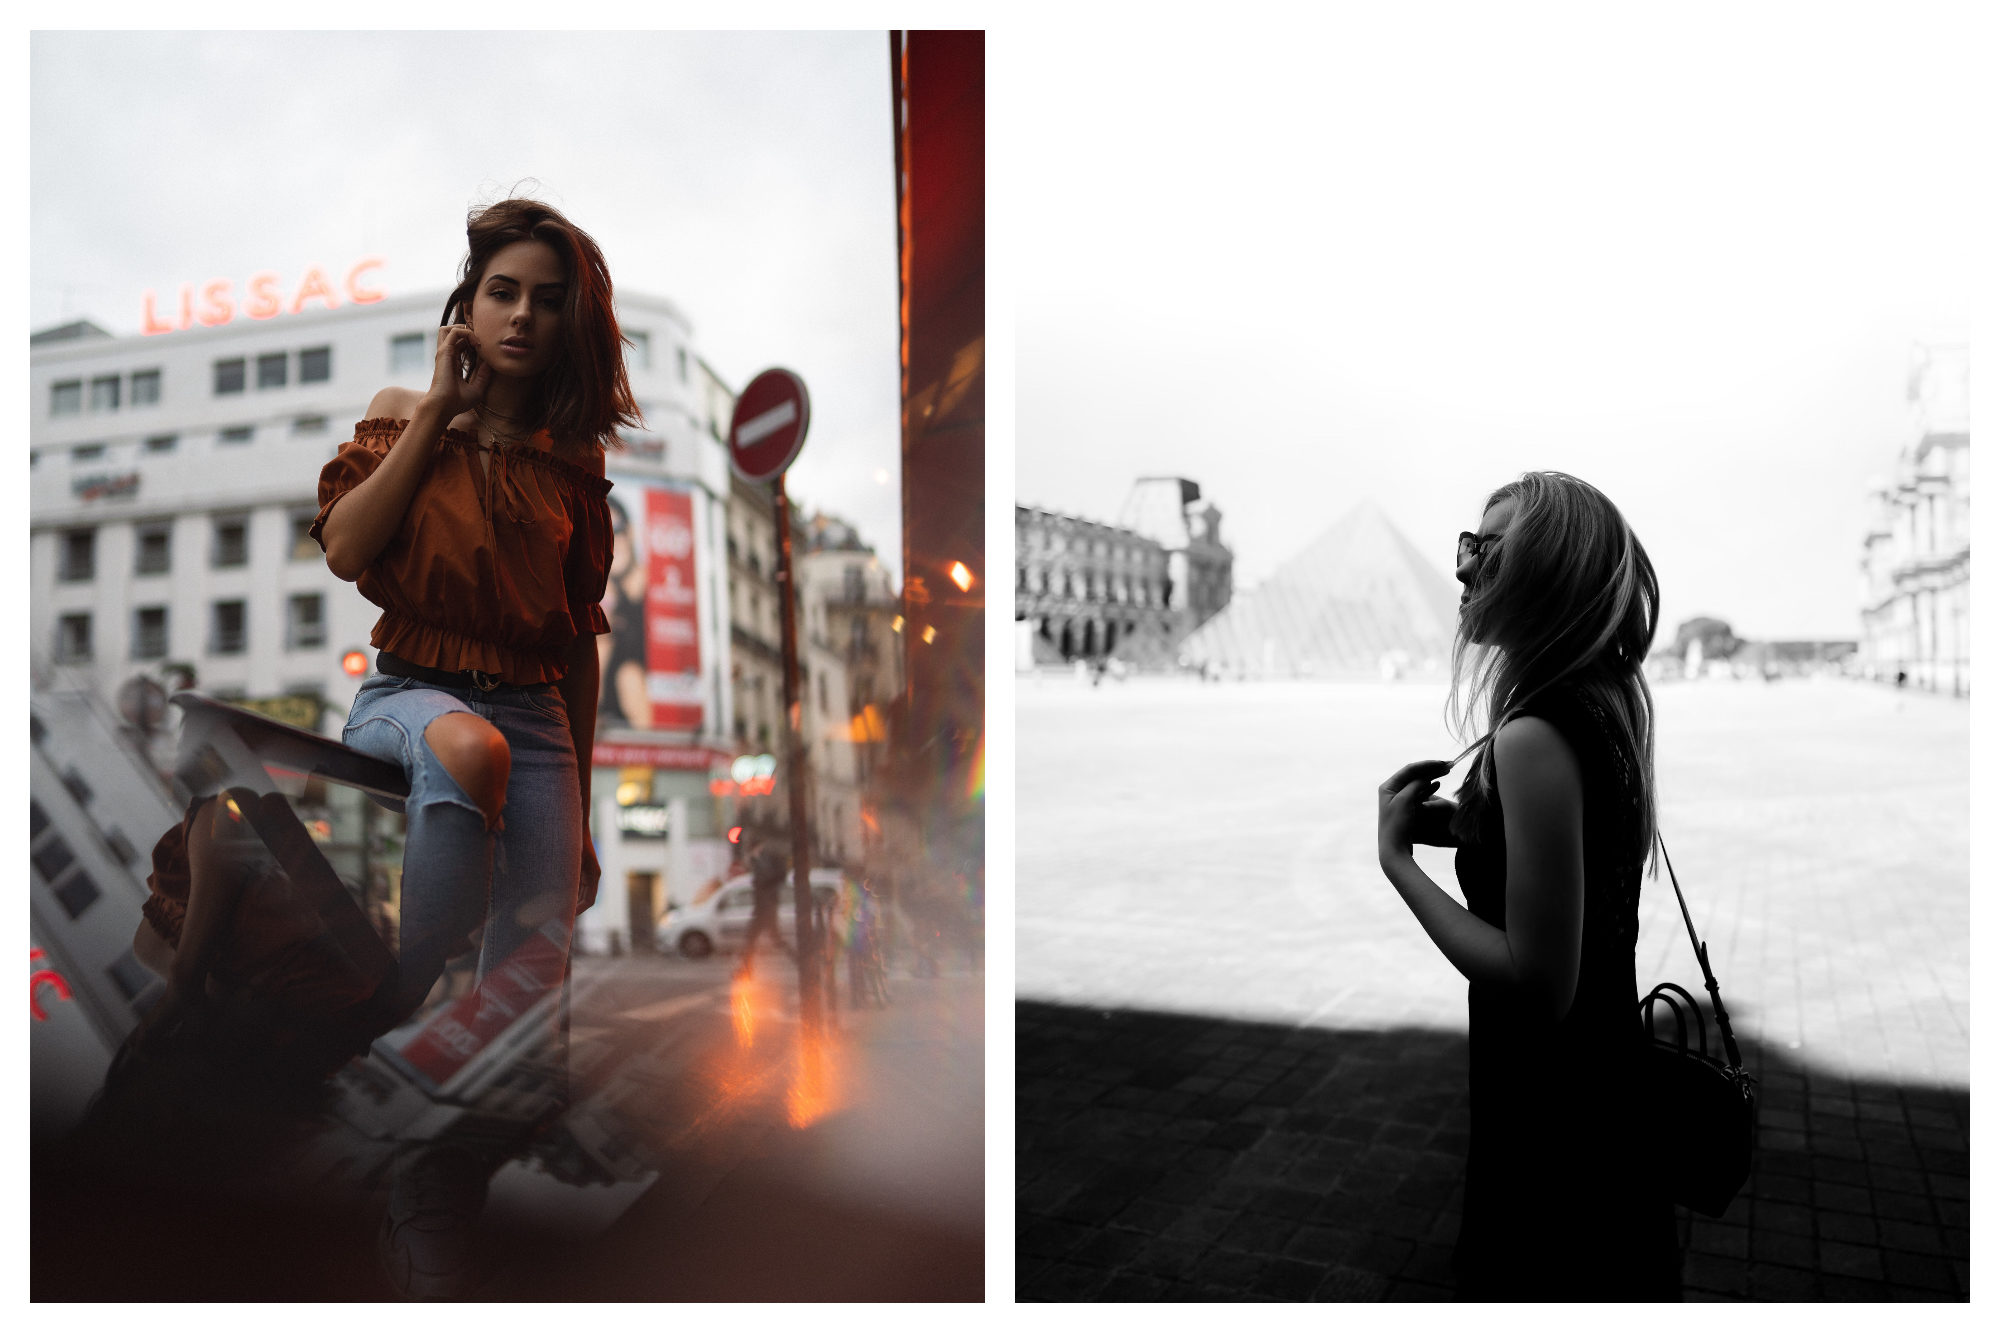 A young woman in Paris dressed in an off-the-shoulder rust colored top and ripped jeans (left). A young woman visiting Paris in the summer, with the Louvre's glass pyramid in the background (right).